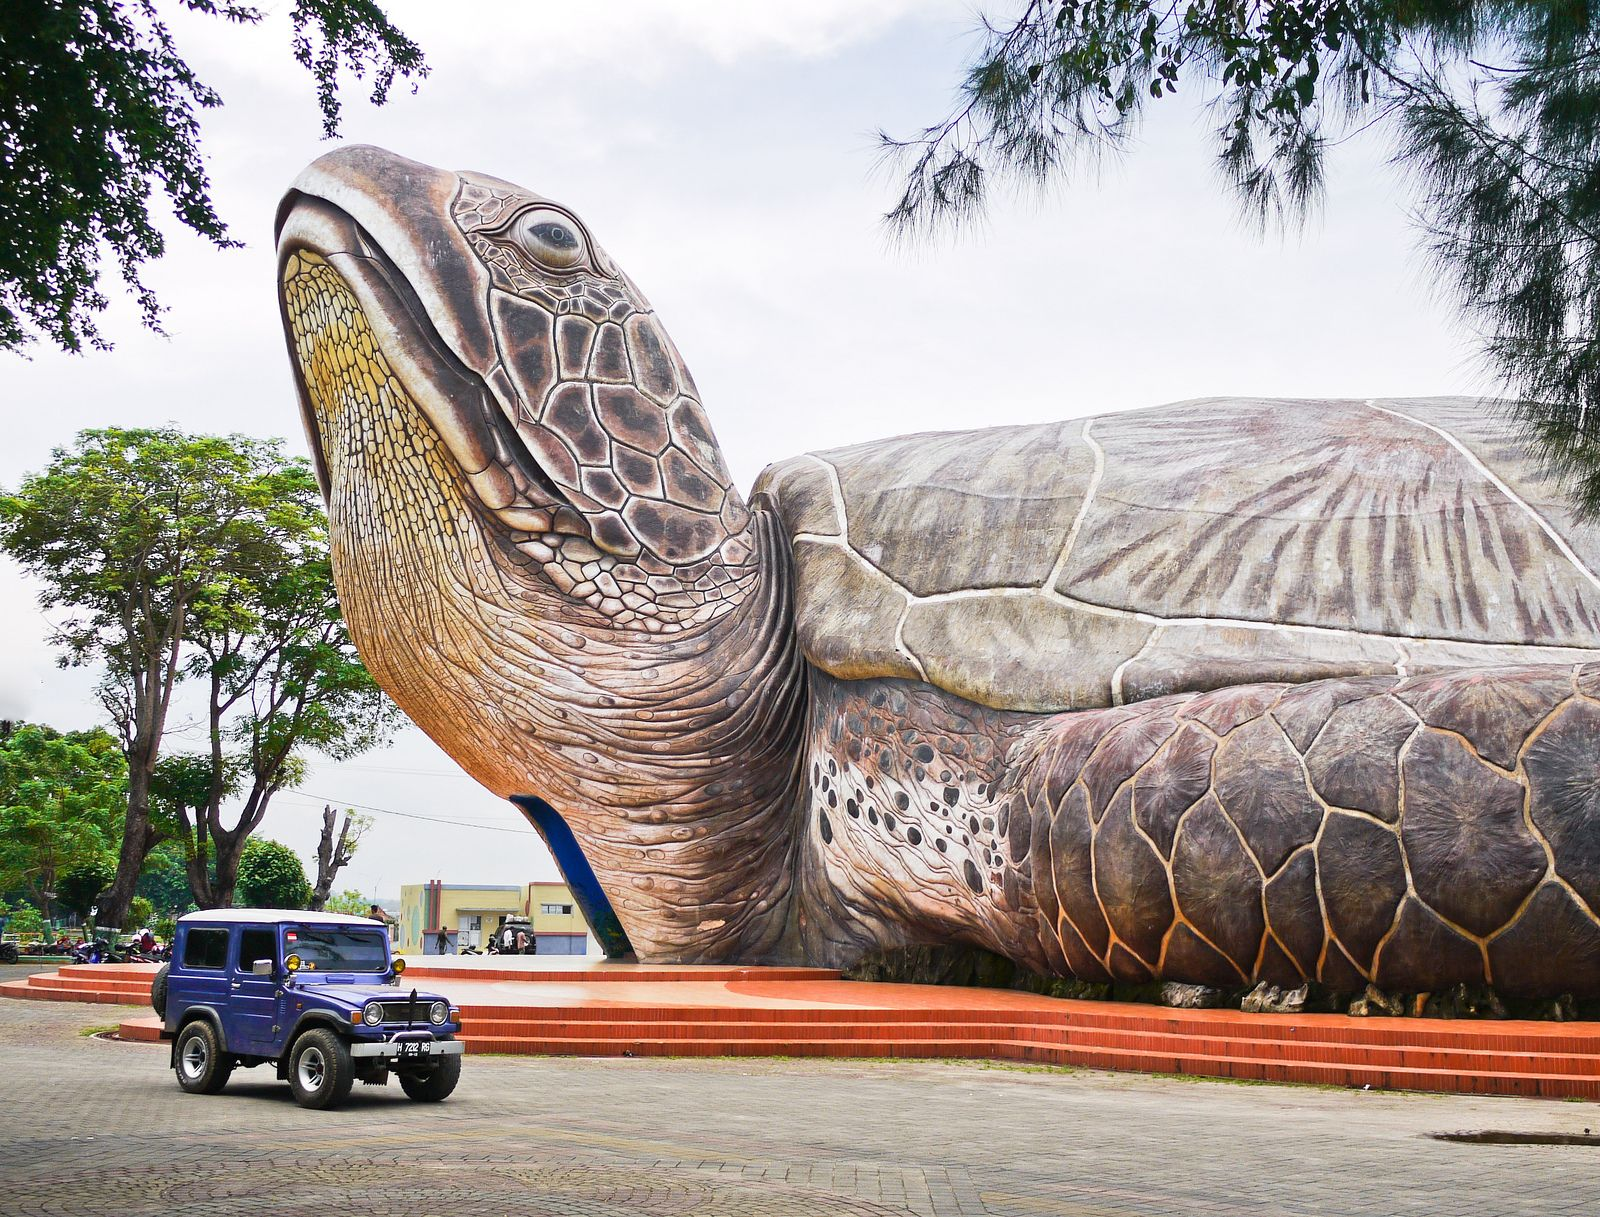 The biggest turtle in the world 38